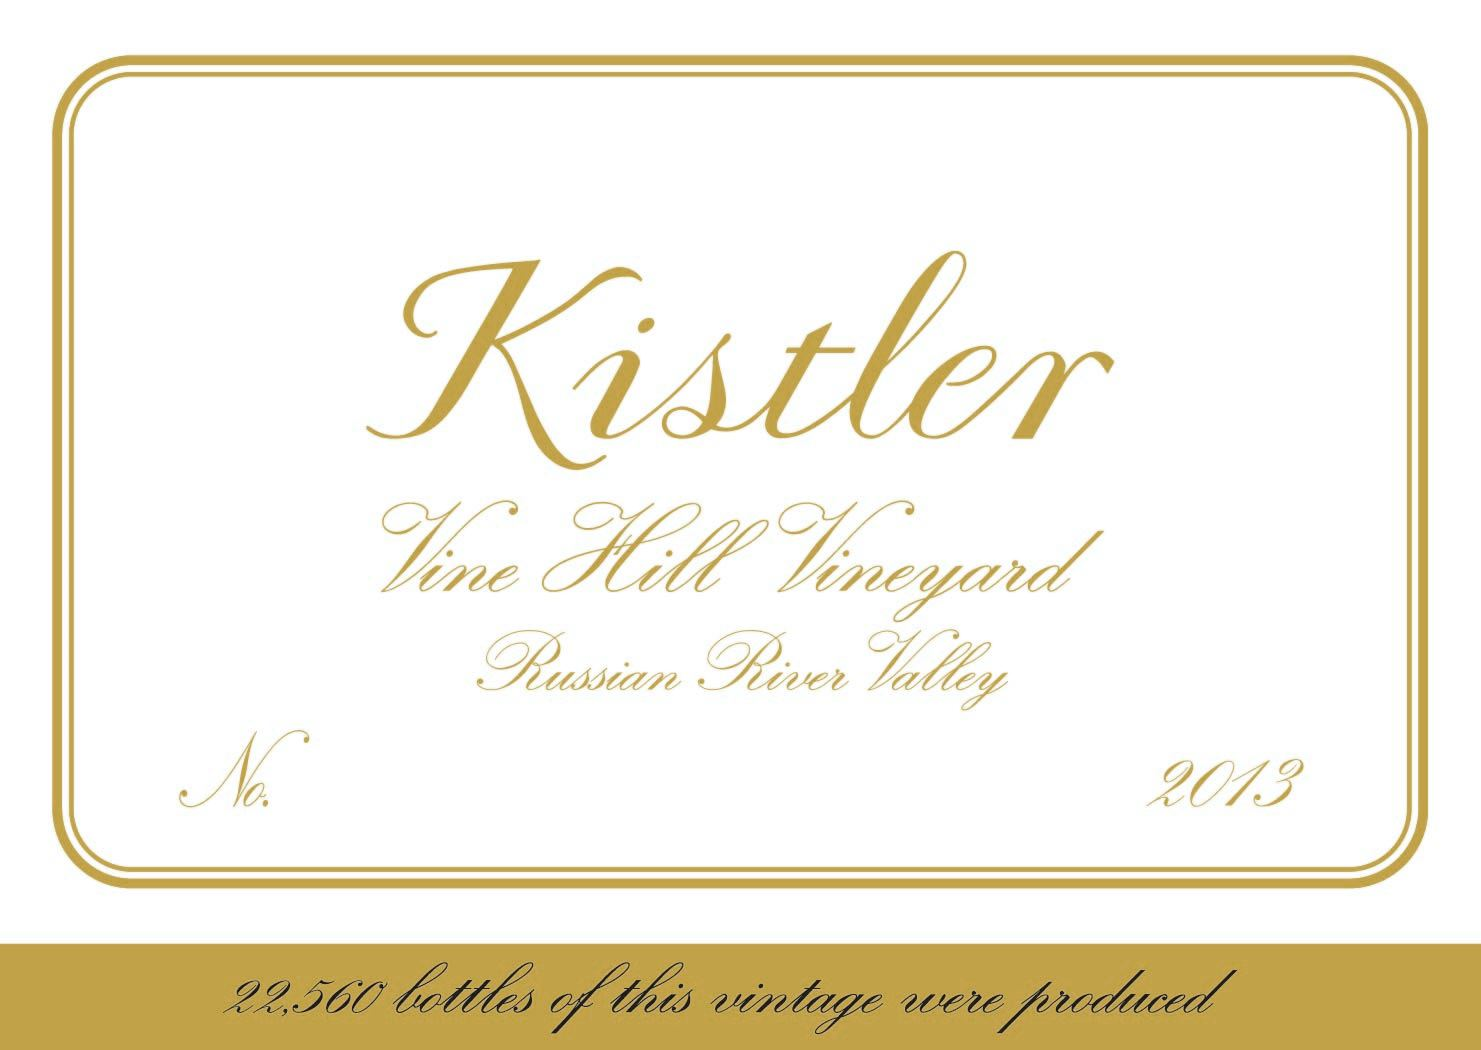 2014 Kistler Chardonnay Vine Hill Road Vineyard